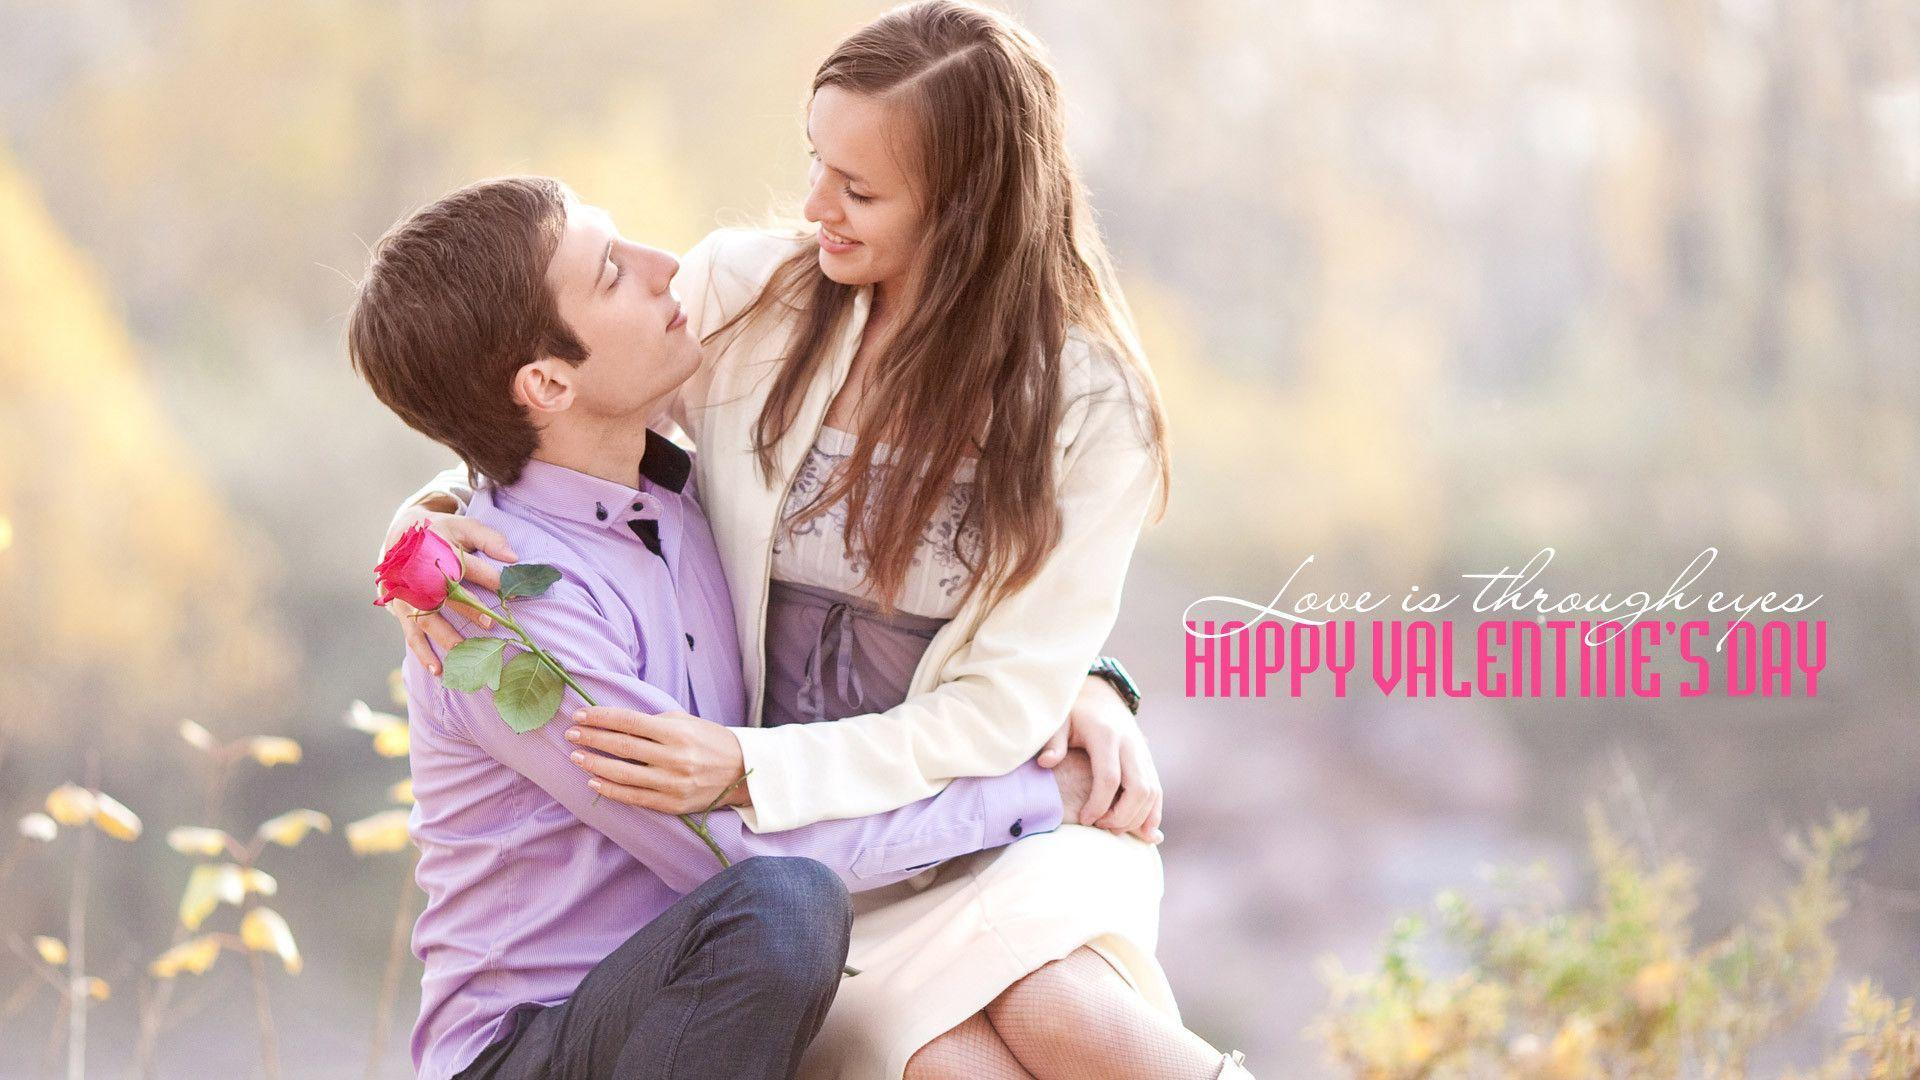 Love Wallpaper couple Image : cute couple Backgrounds - Wallpaper cave